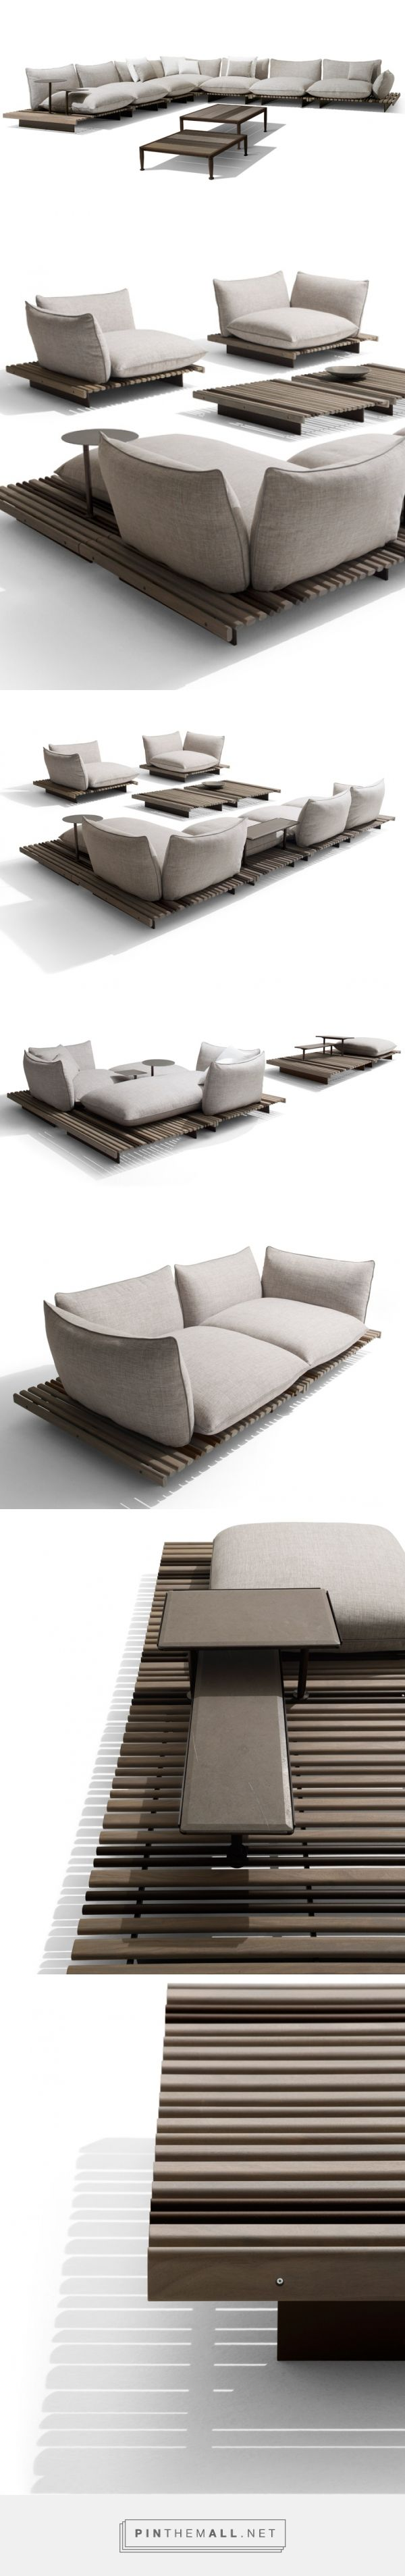 ludovica and roberto palomba aspara sofa for giorgetti - created via https://pinthemall.net